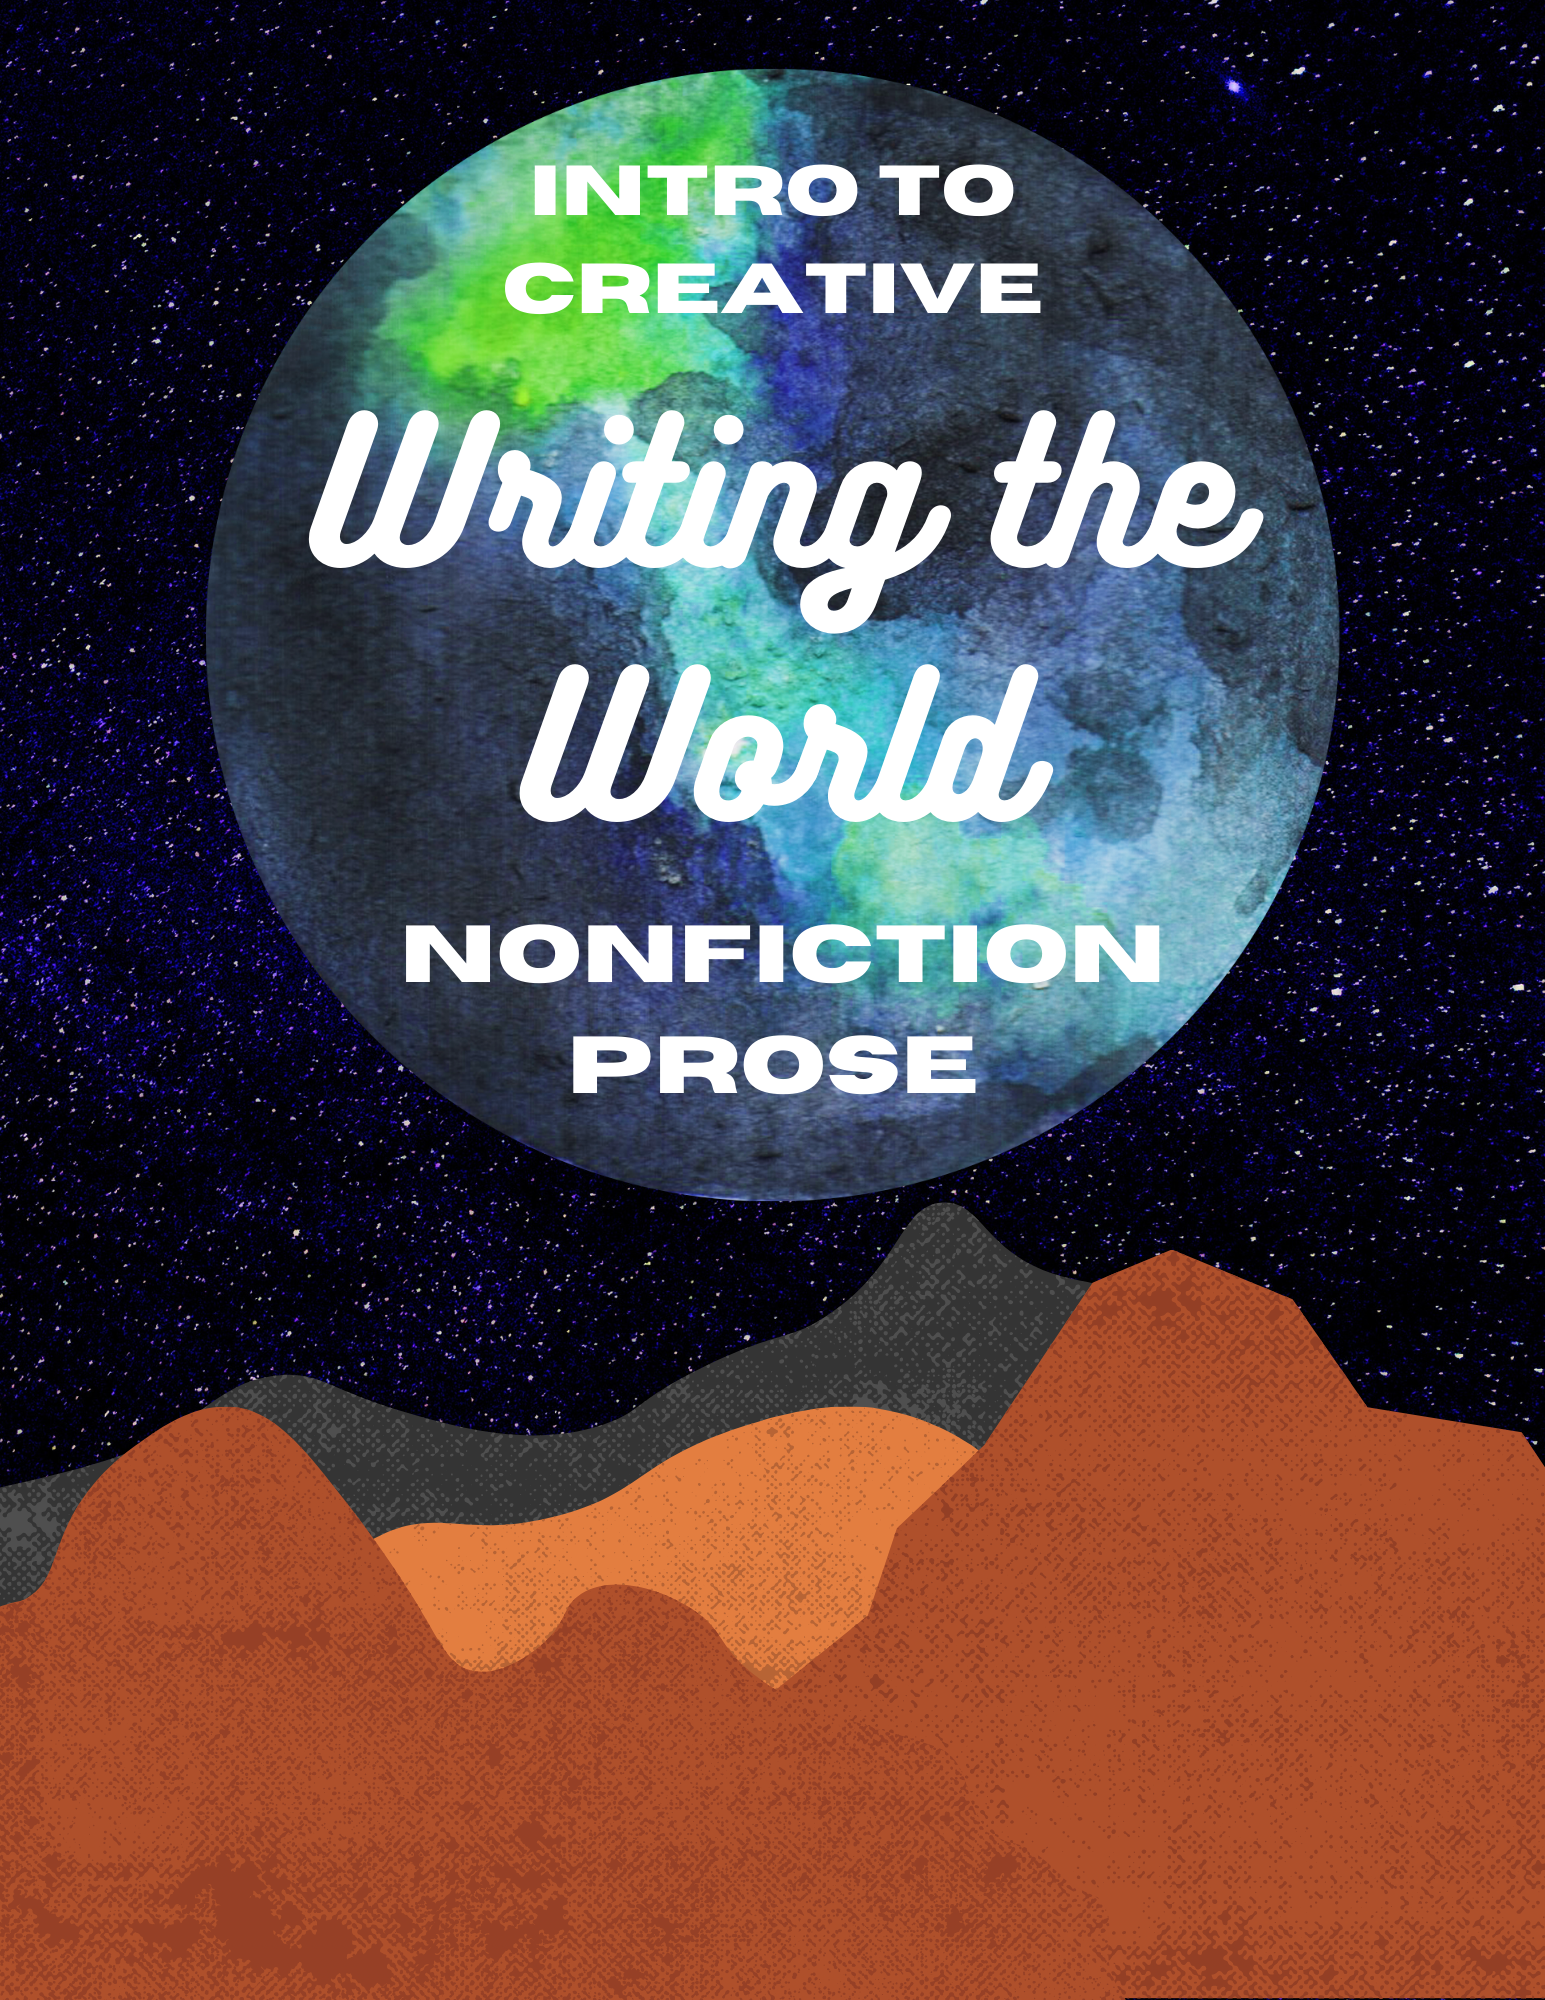 horizontal flyer featuring an image of Earth in space, seen from the vantage of a planet with a rocky, ochre- and gray-colored terrain. The flyer's white text reads Intro to Creative Nonfiction Prose Writing the World.